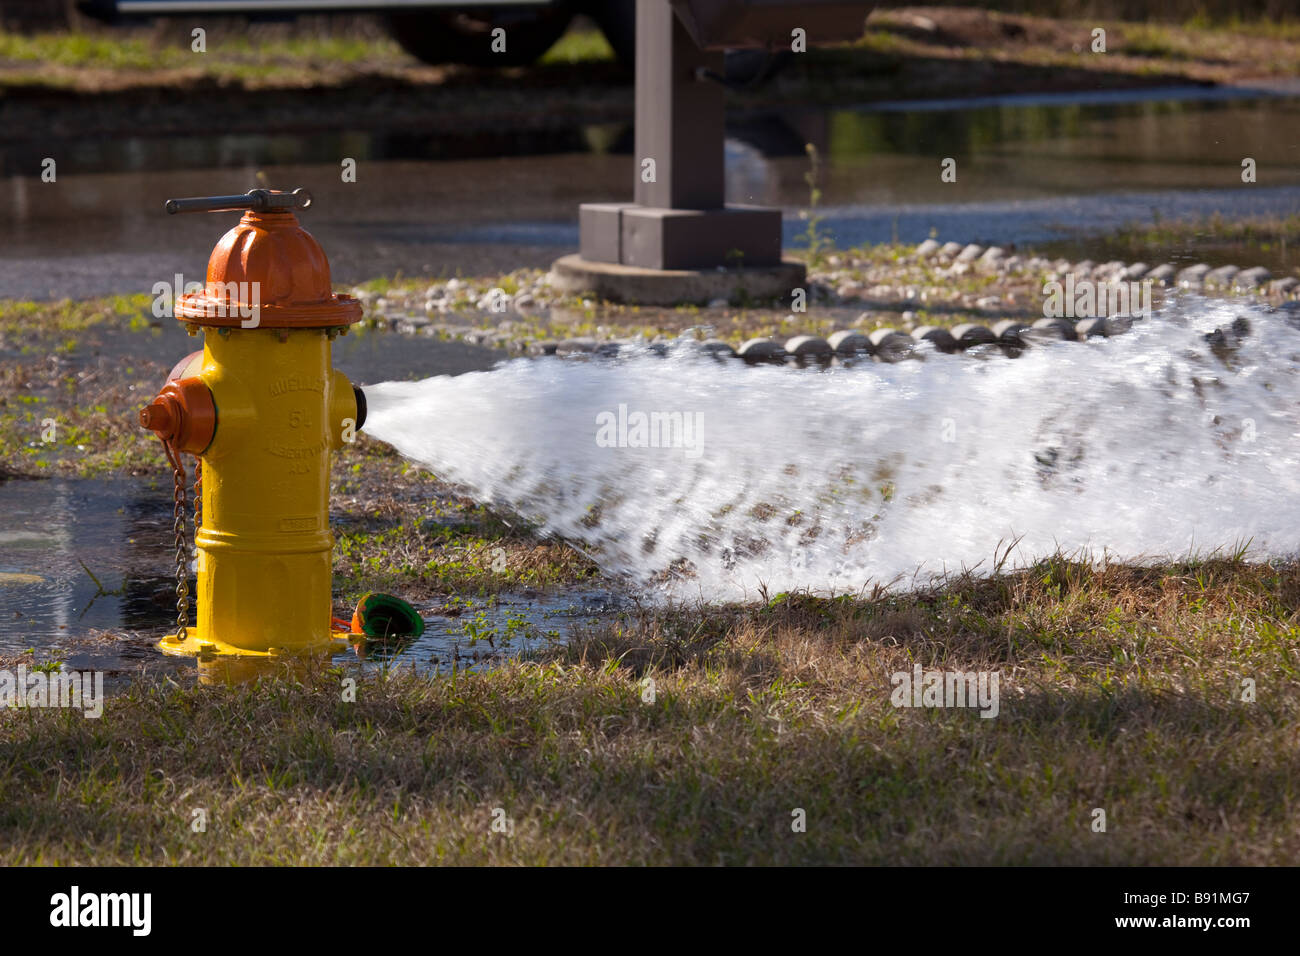 Water gushing out of an open fire hydrant - Stock Image